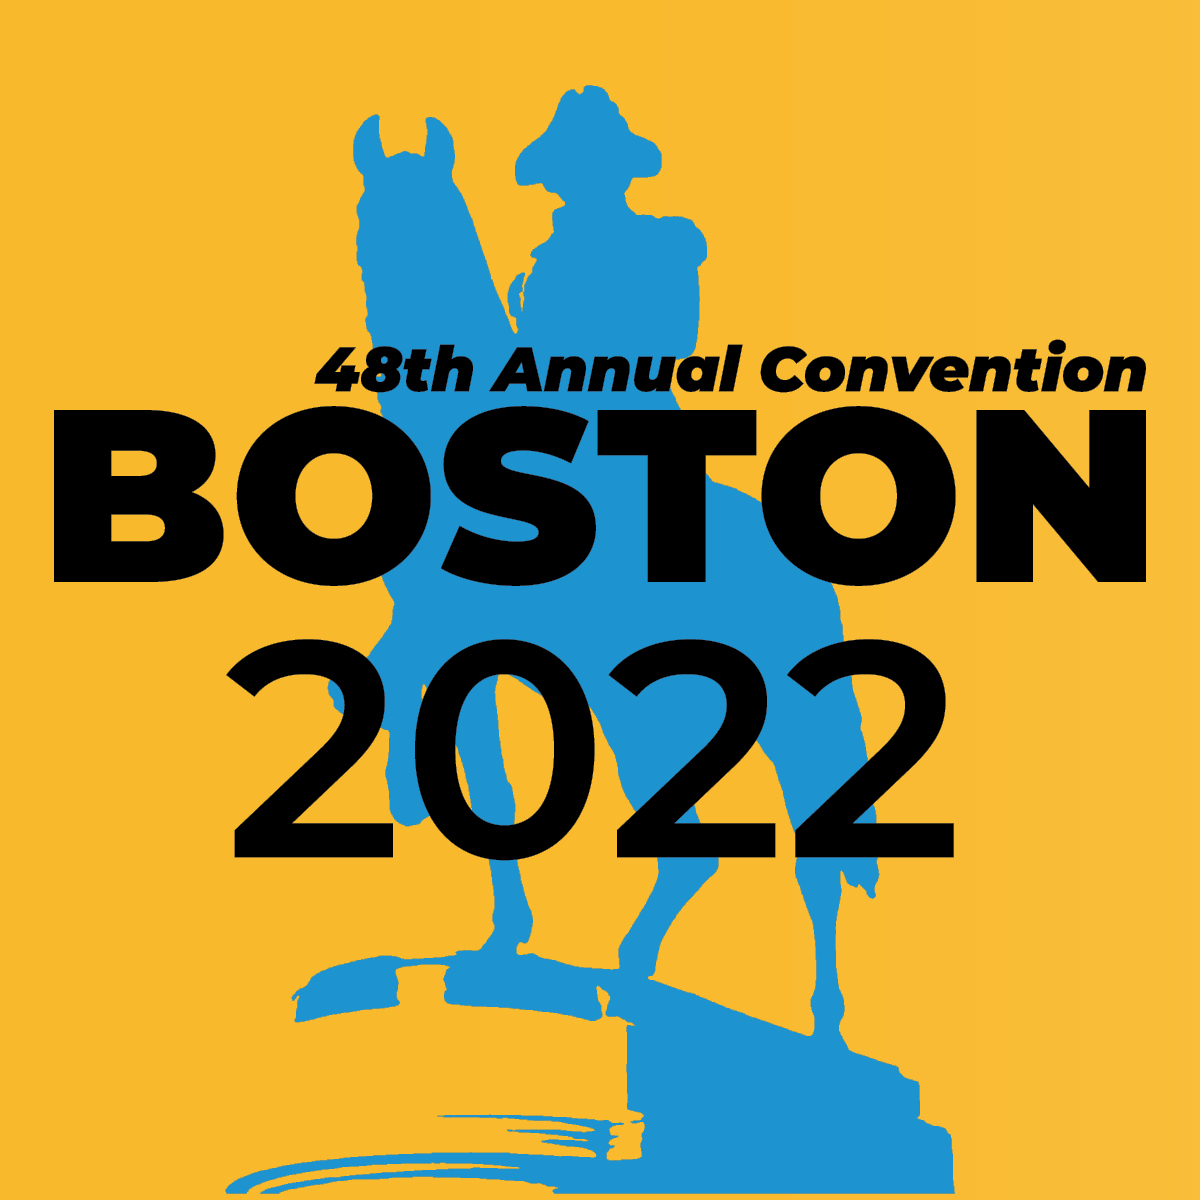 Annual Convention 2022 Boston, MA